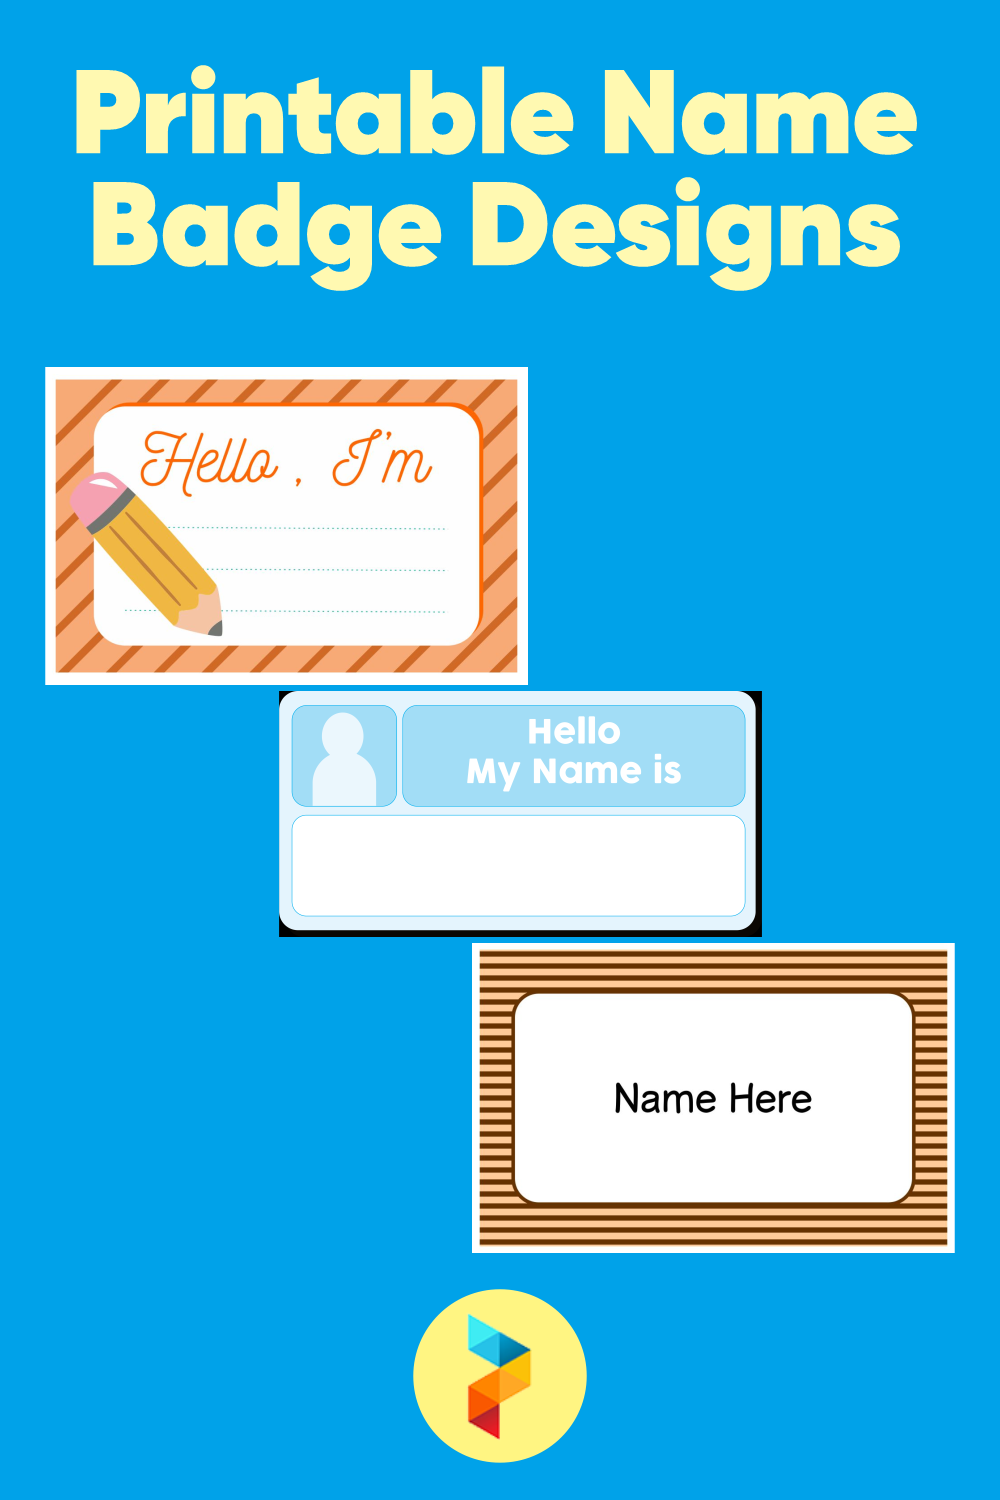 Printable Name Badge Designs